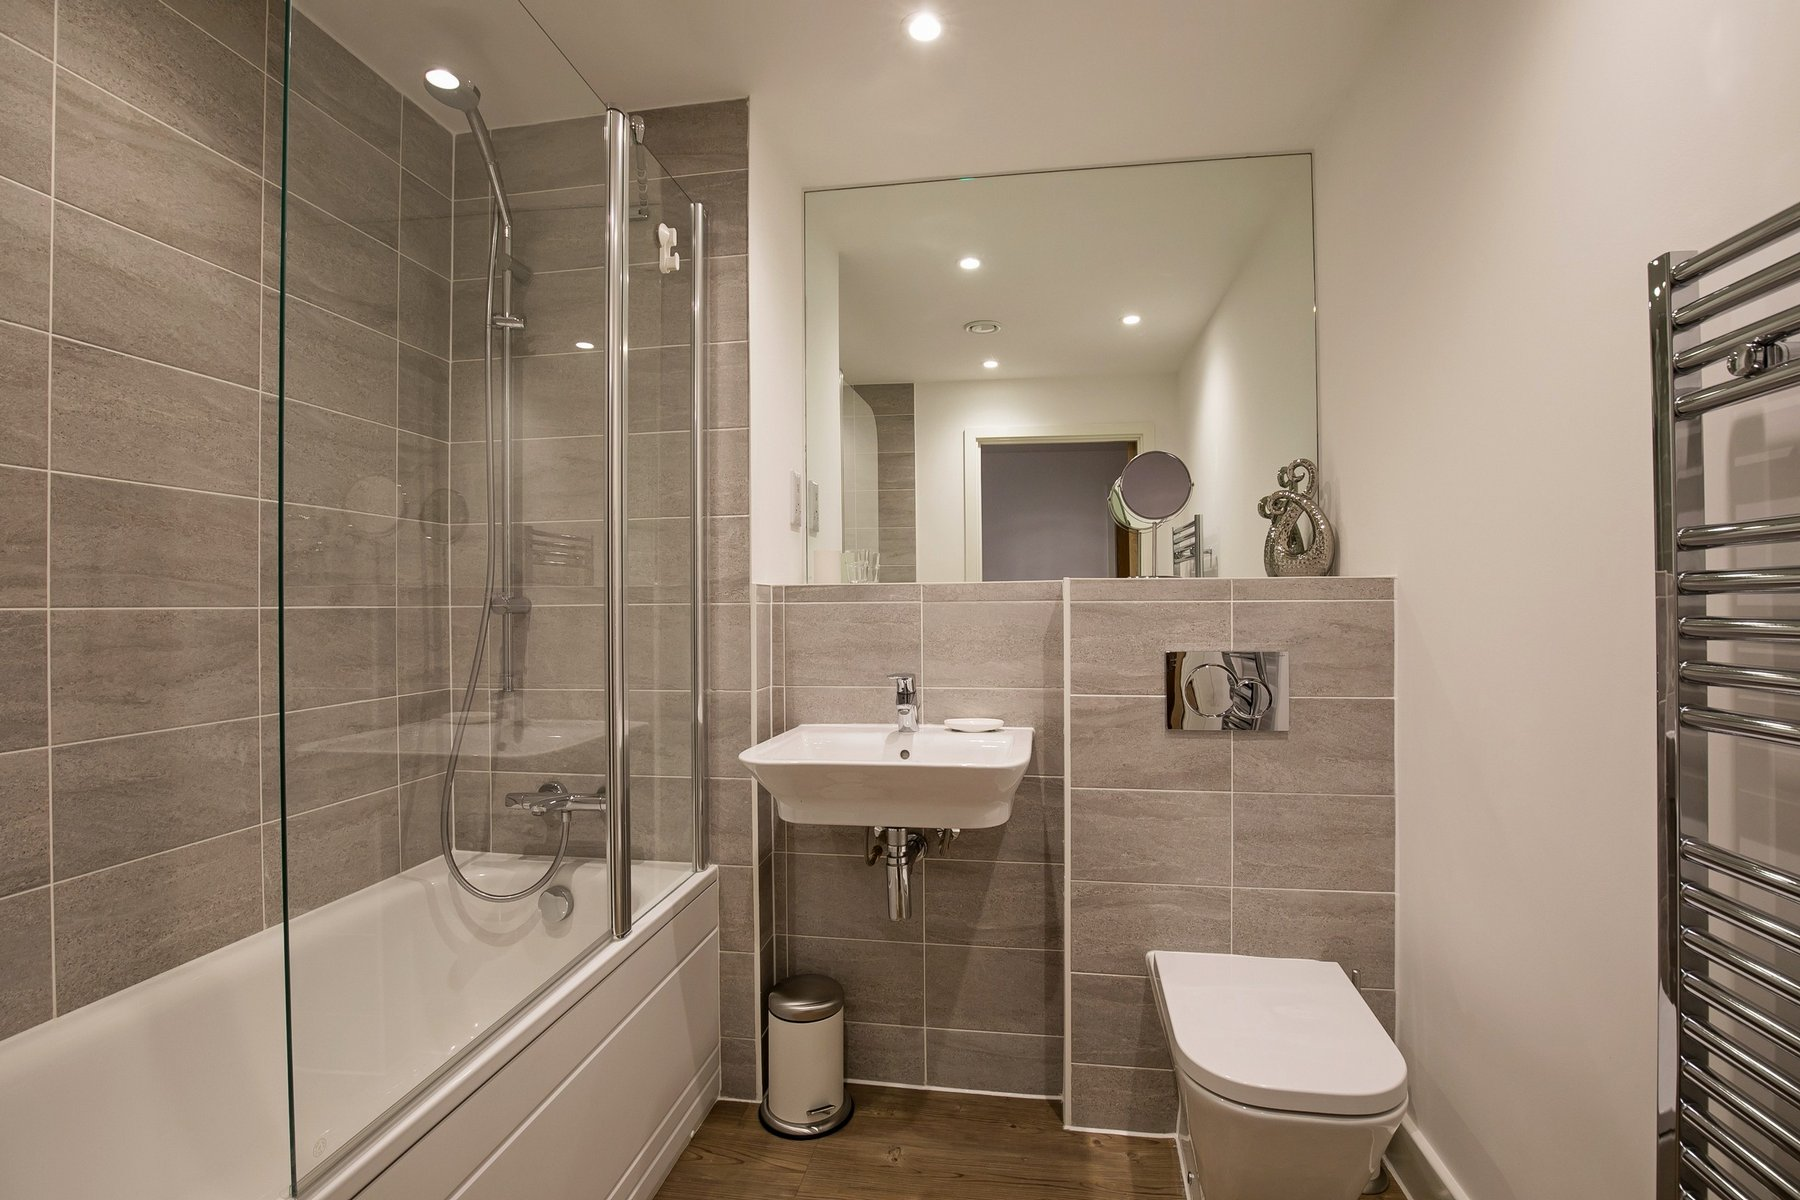 Bathroom at Kennet House Serviced Apartments, Centre, Reading - Citybase Apartments